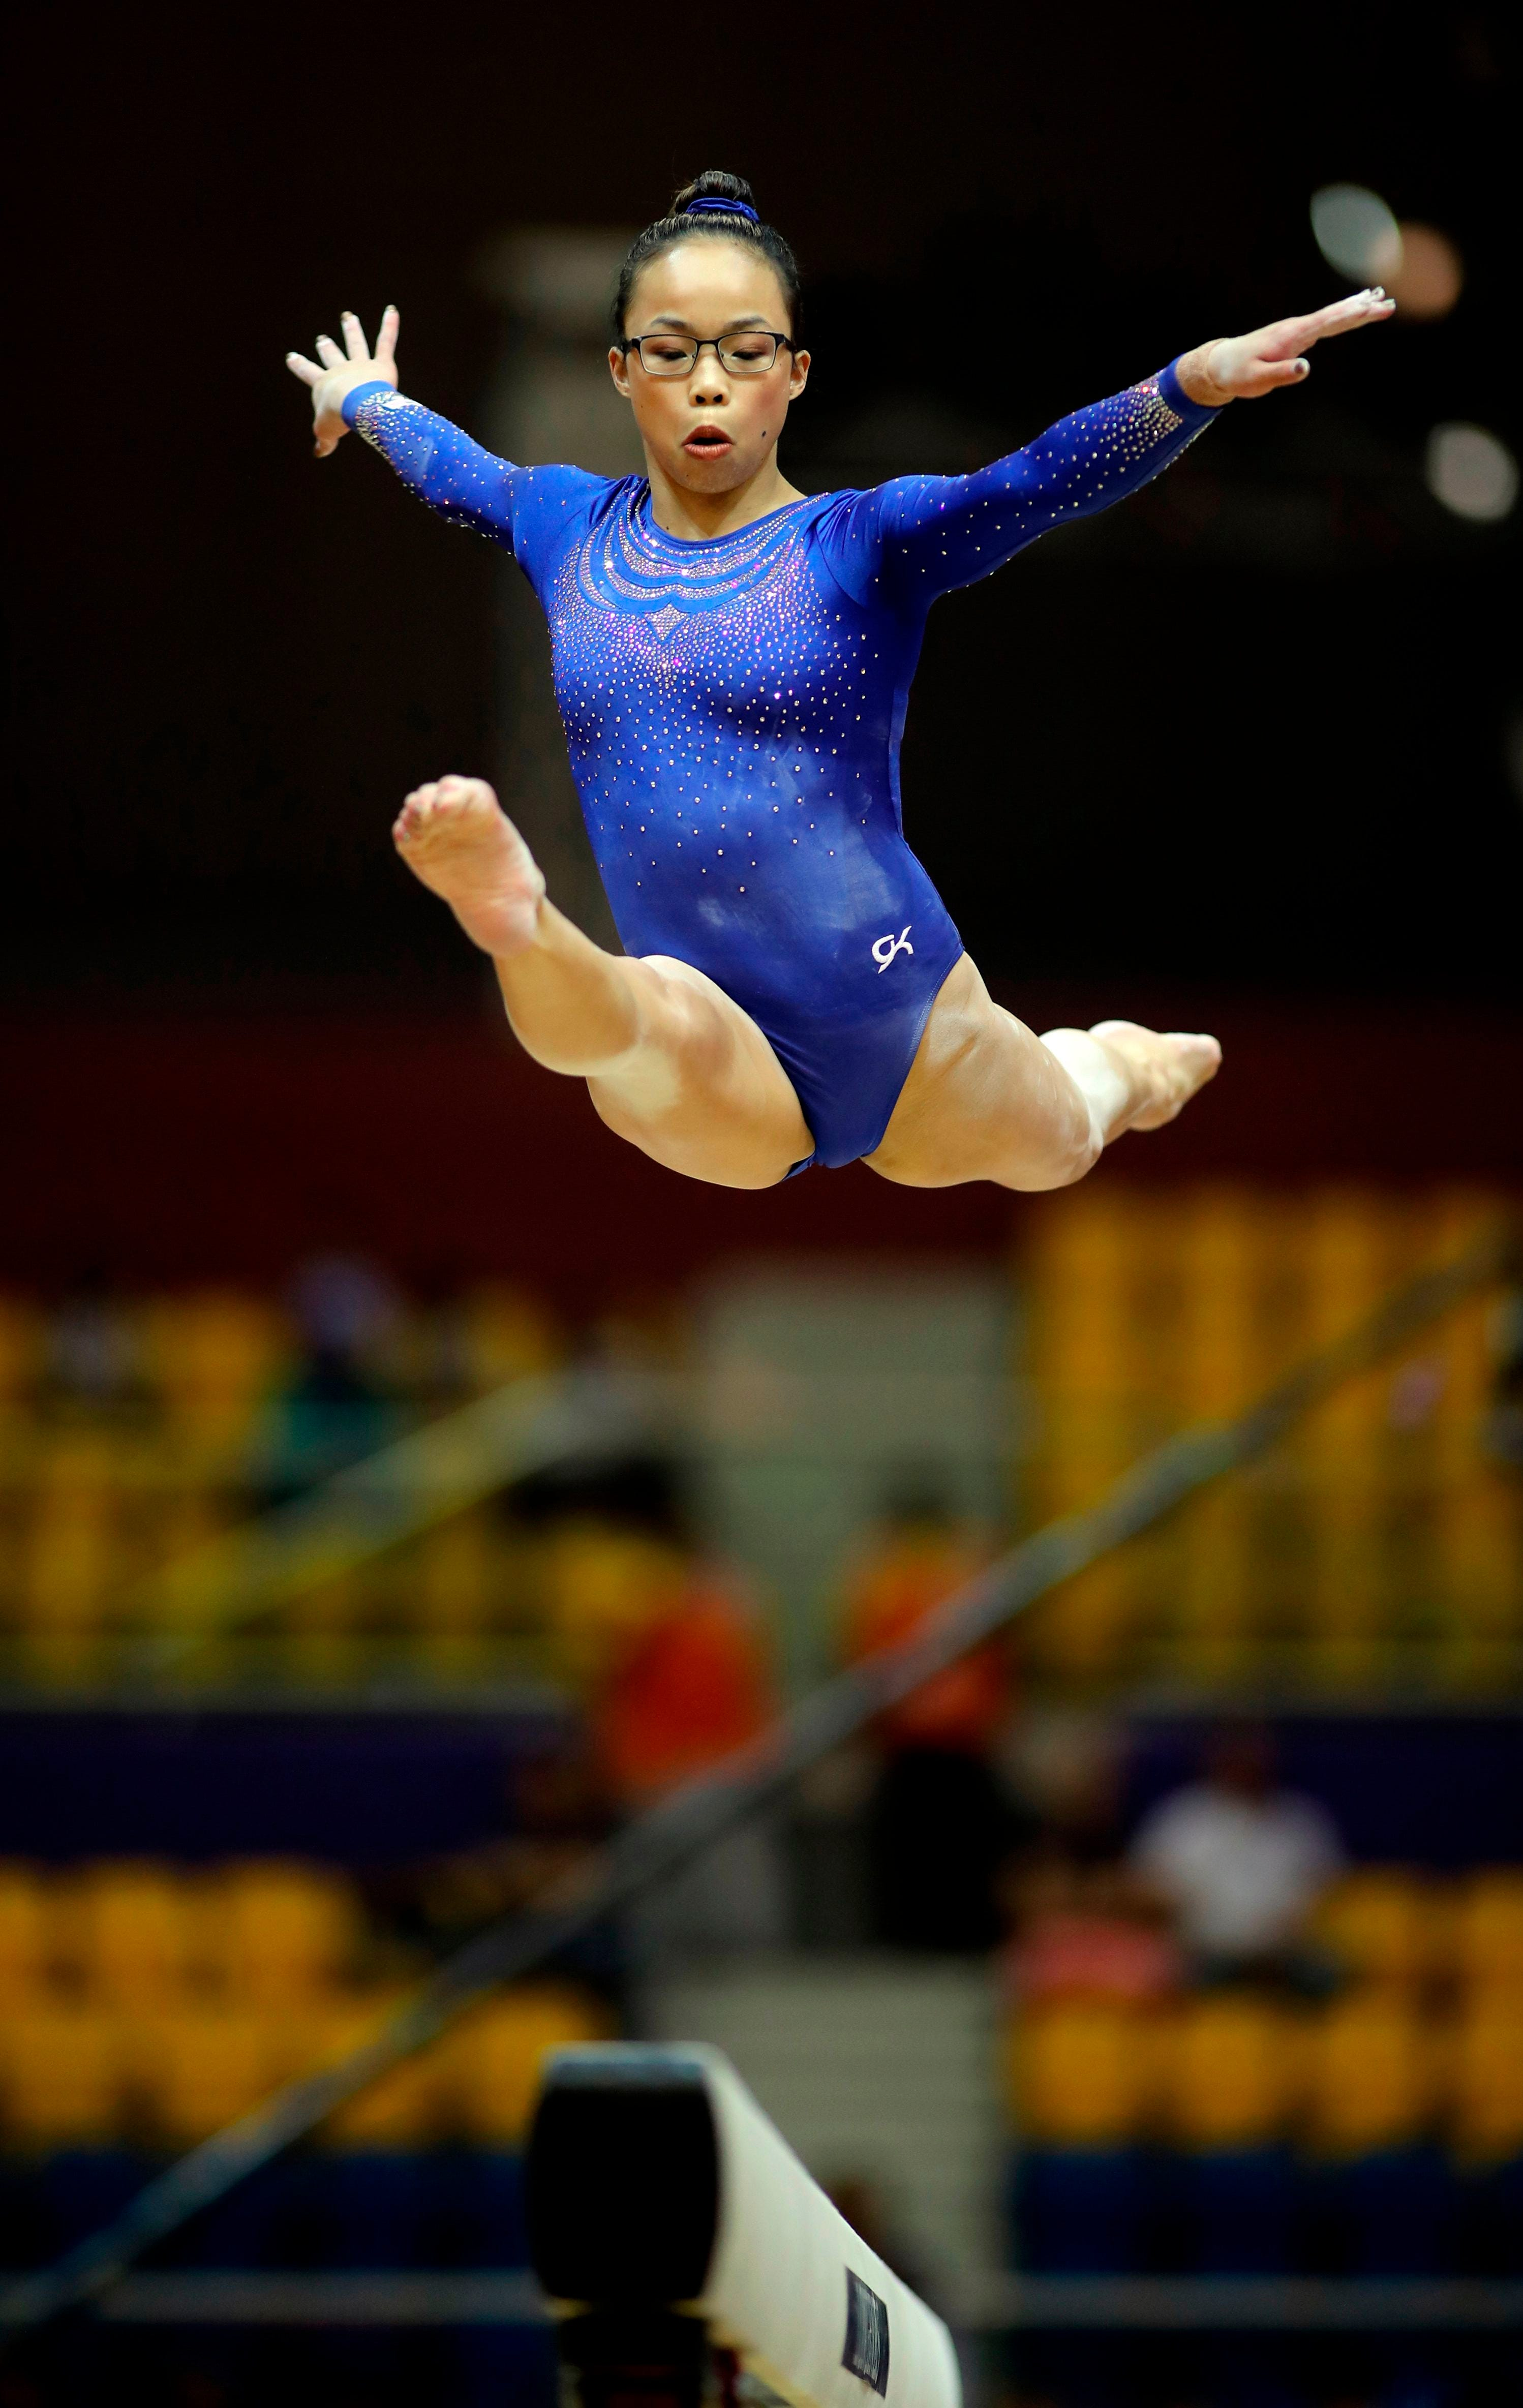 Delaware's Morgan Hurd competes in the women's balance beam qualification during day three of the 2018 FIG Artistic Gymnastics Championships at Aspire Dome on Oct. 27, 2018, in Doha.